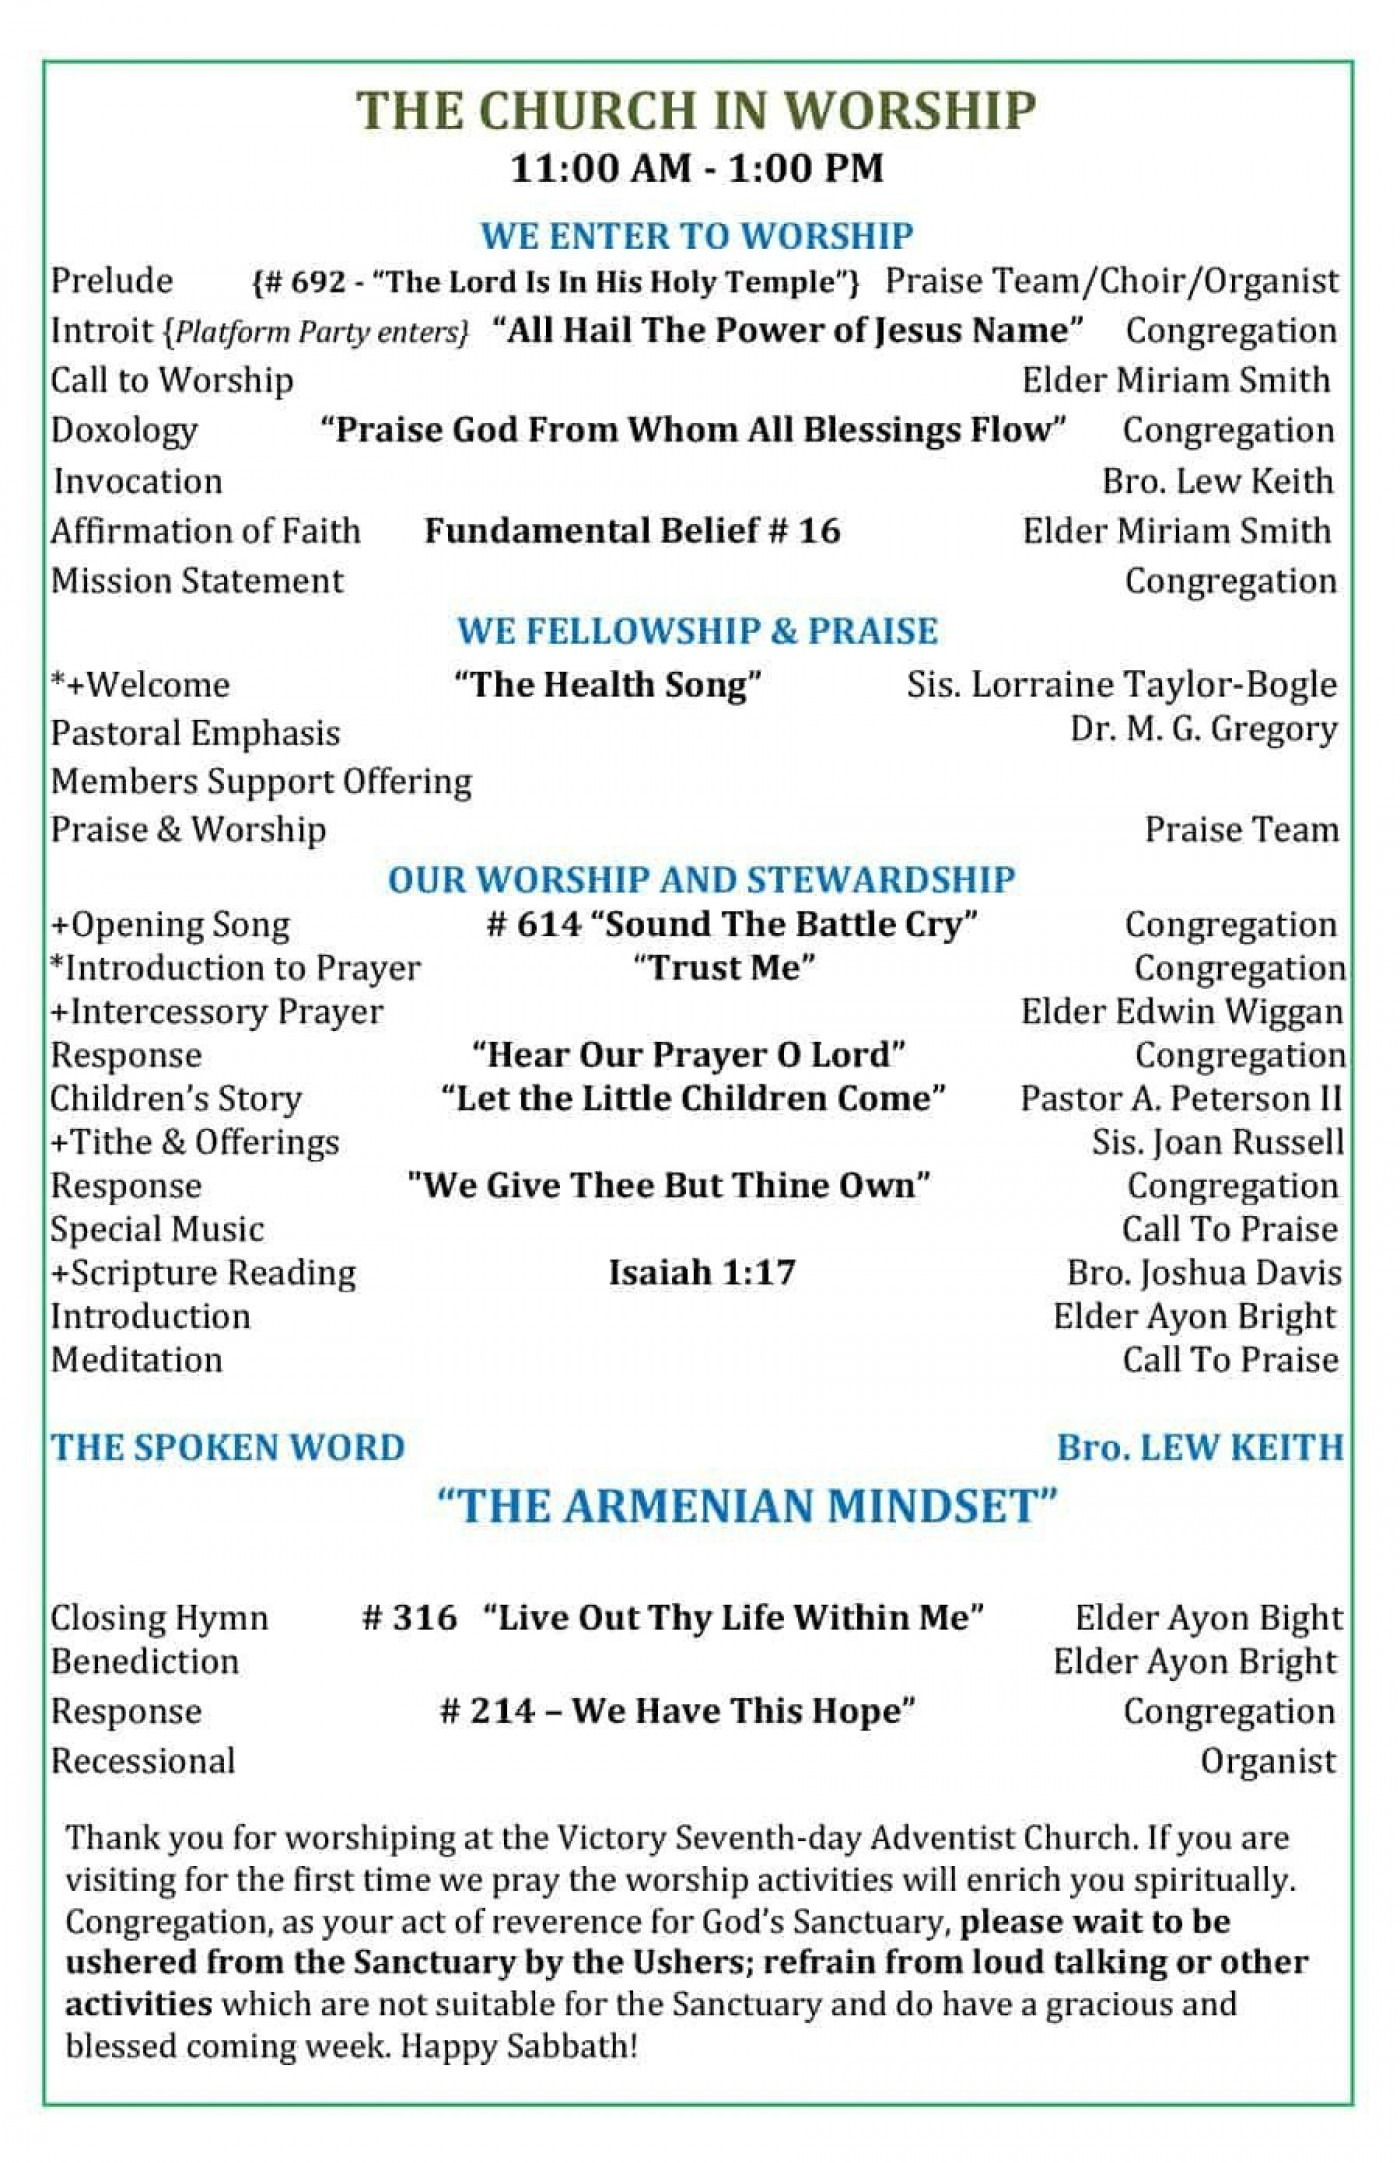 000 Incredible Free Church Program Template Word Inspiration  Bulletin For1400